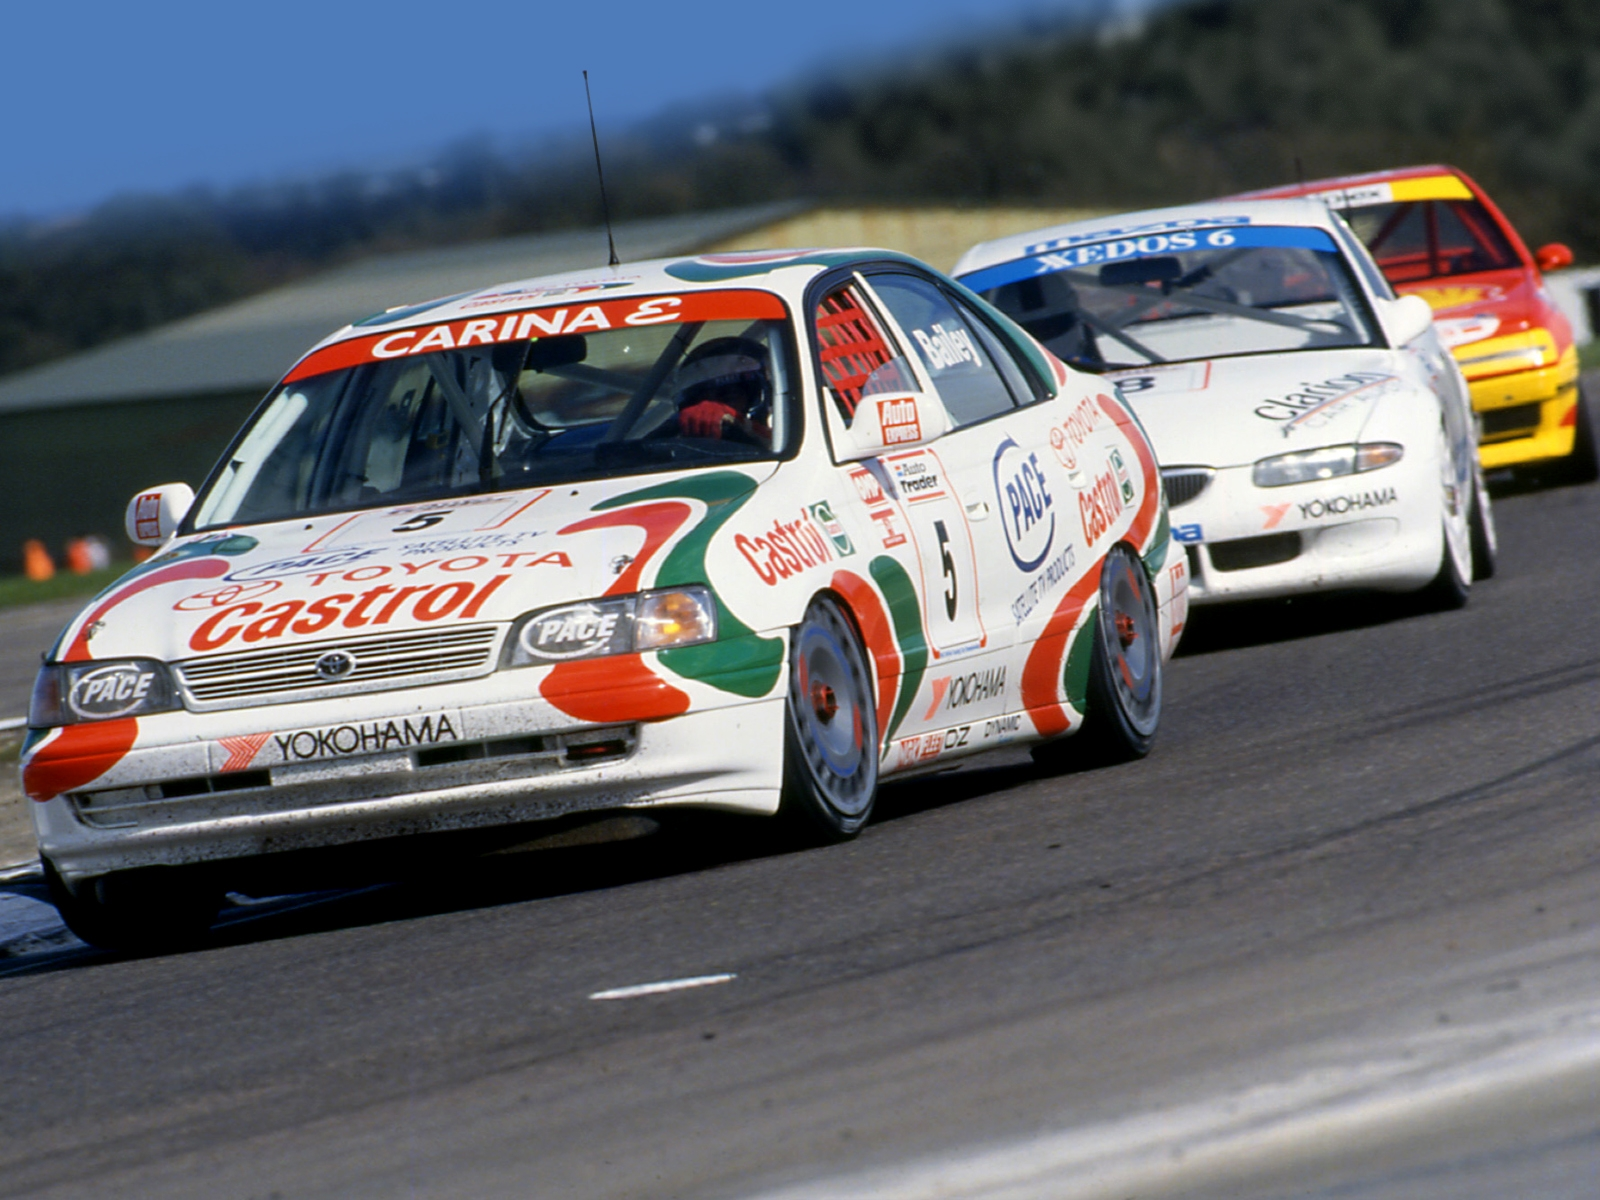 Toyota Carina E Btcc At190 1994 96 Wallpaper And